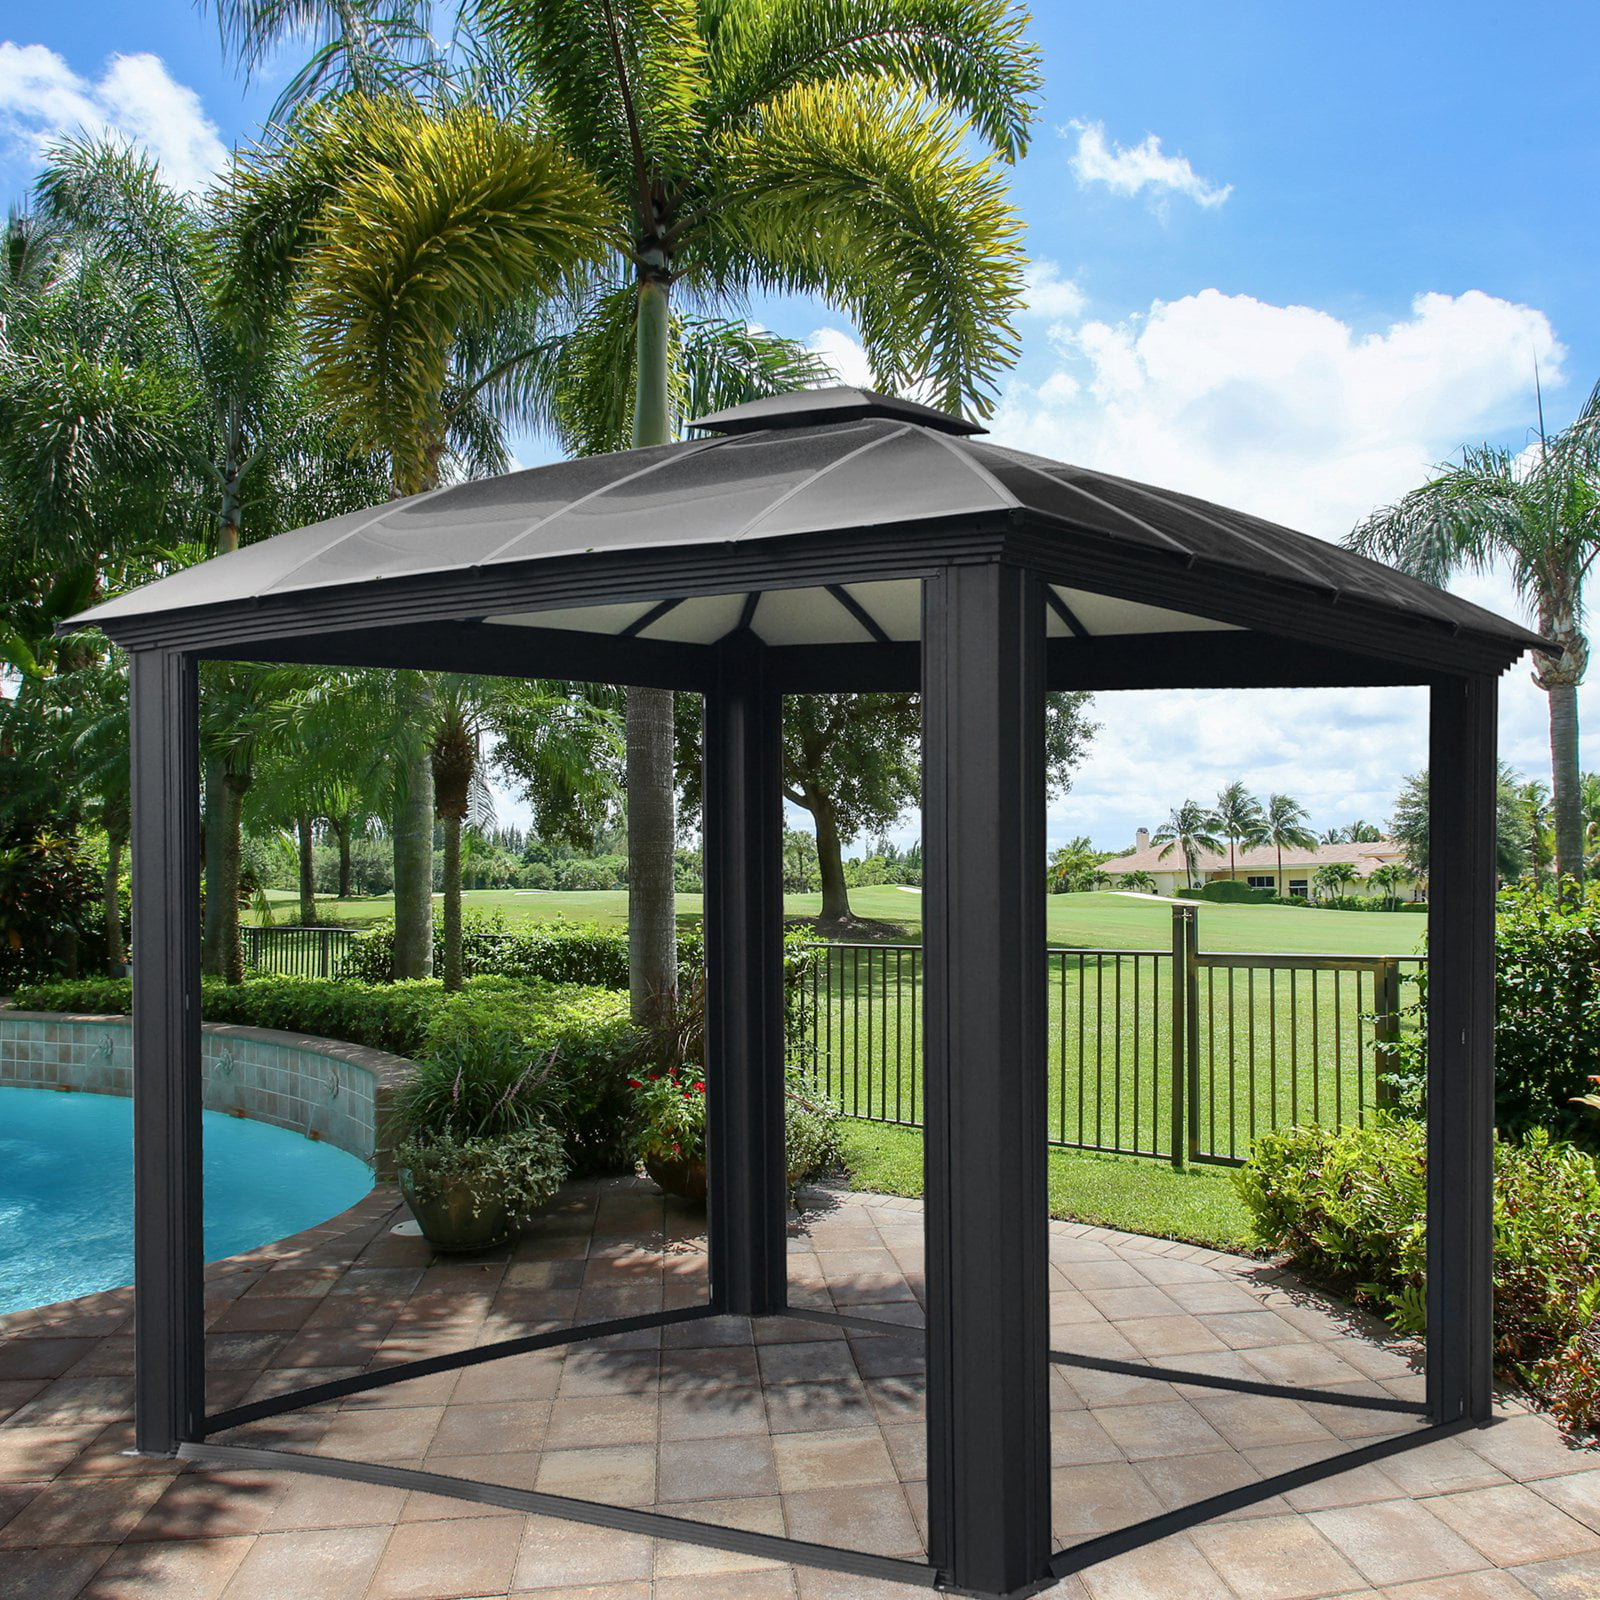 Siena 12x12 Hard Top Gazebo by Paragon Group USA